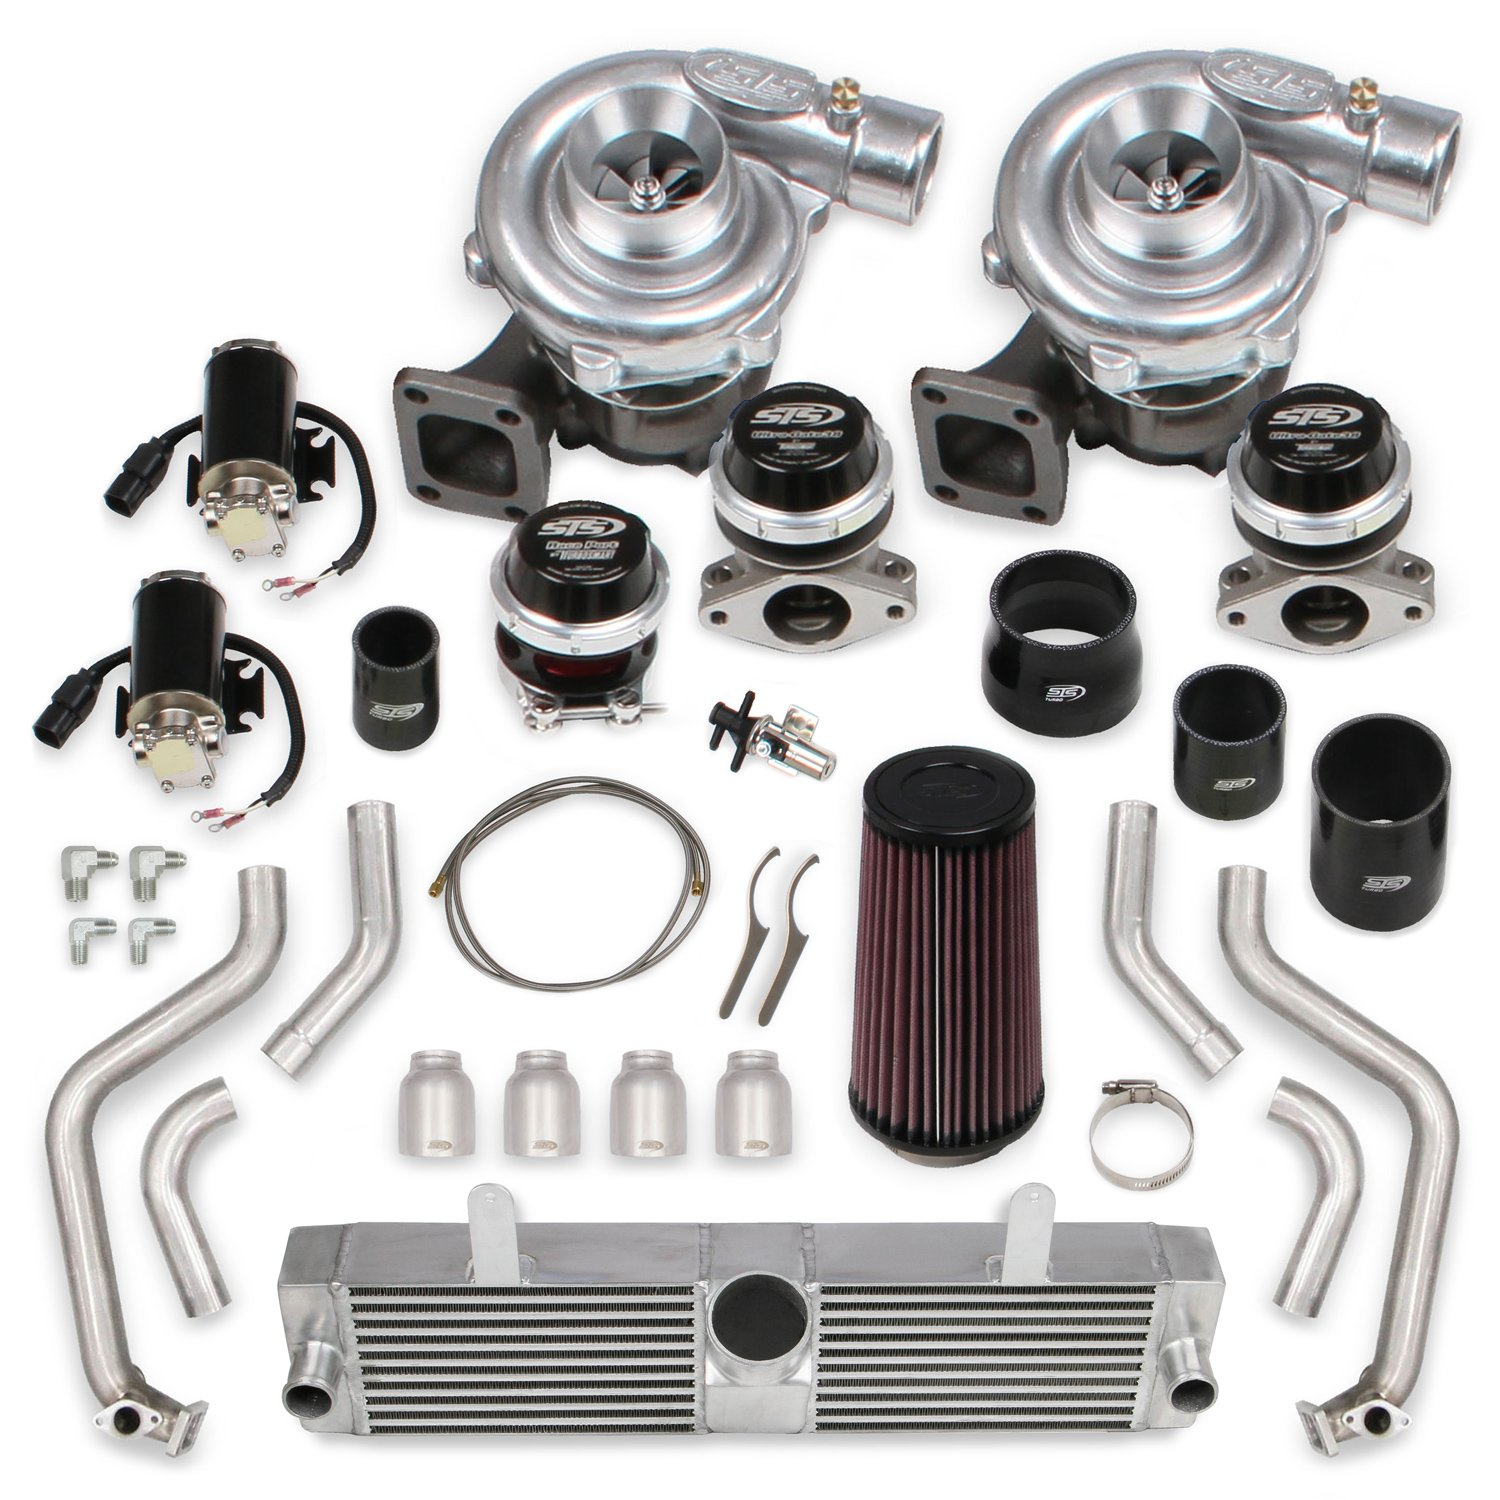 STS Turbo Remote Mounted Twin Turbo System without tuner & fuel injectors  for 2006-2013 Corvette Z06 with LS7 (Standard Kit)